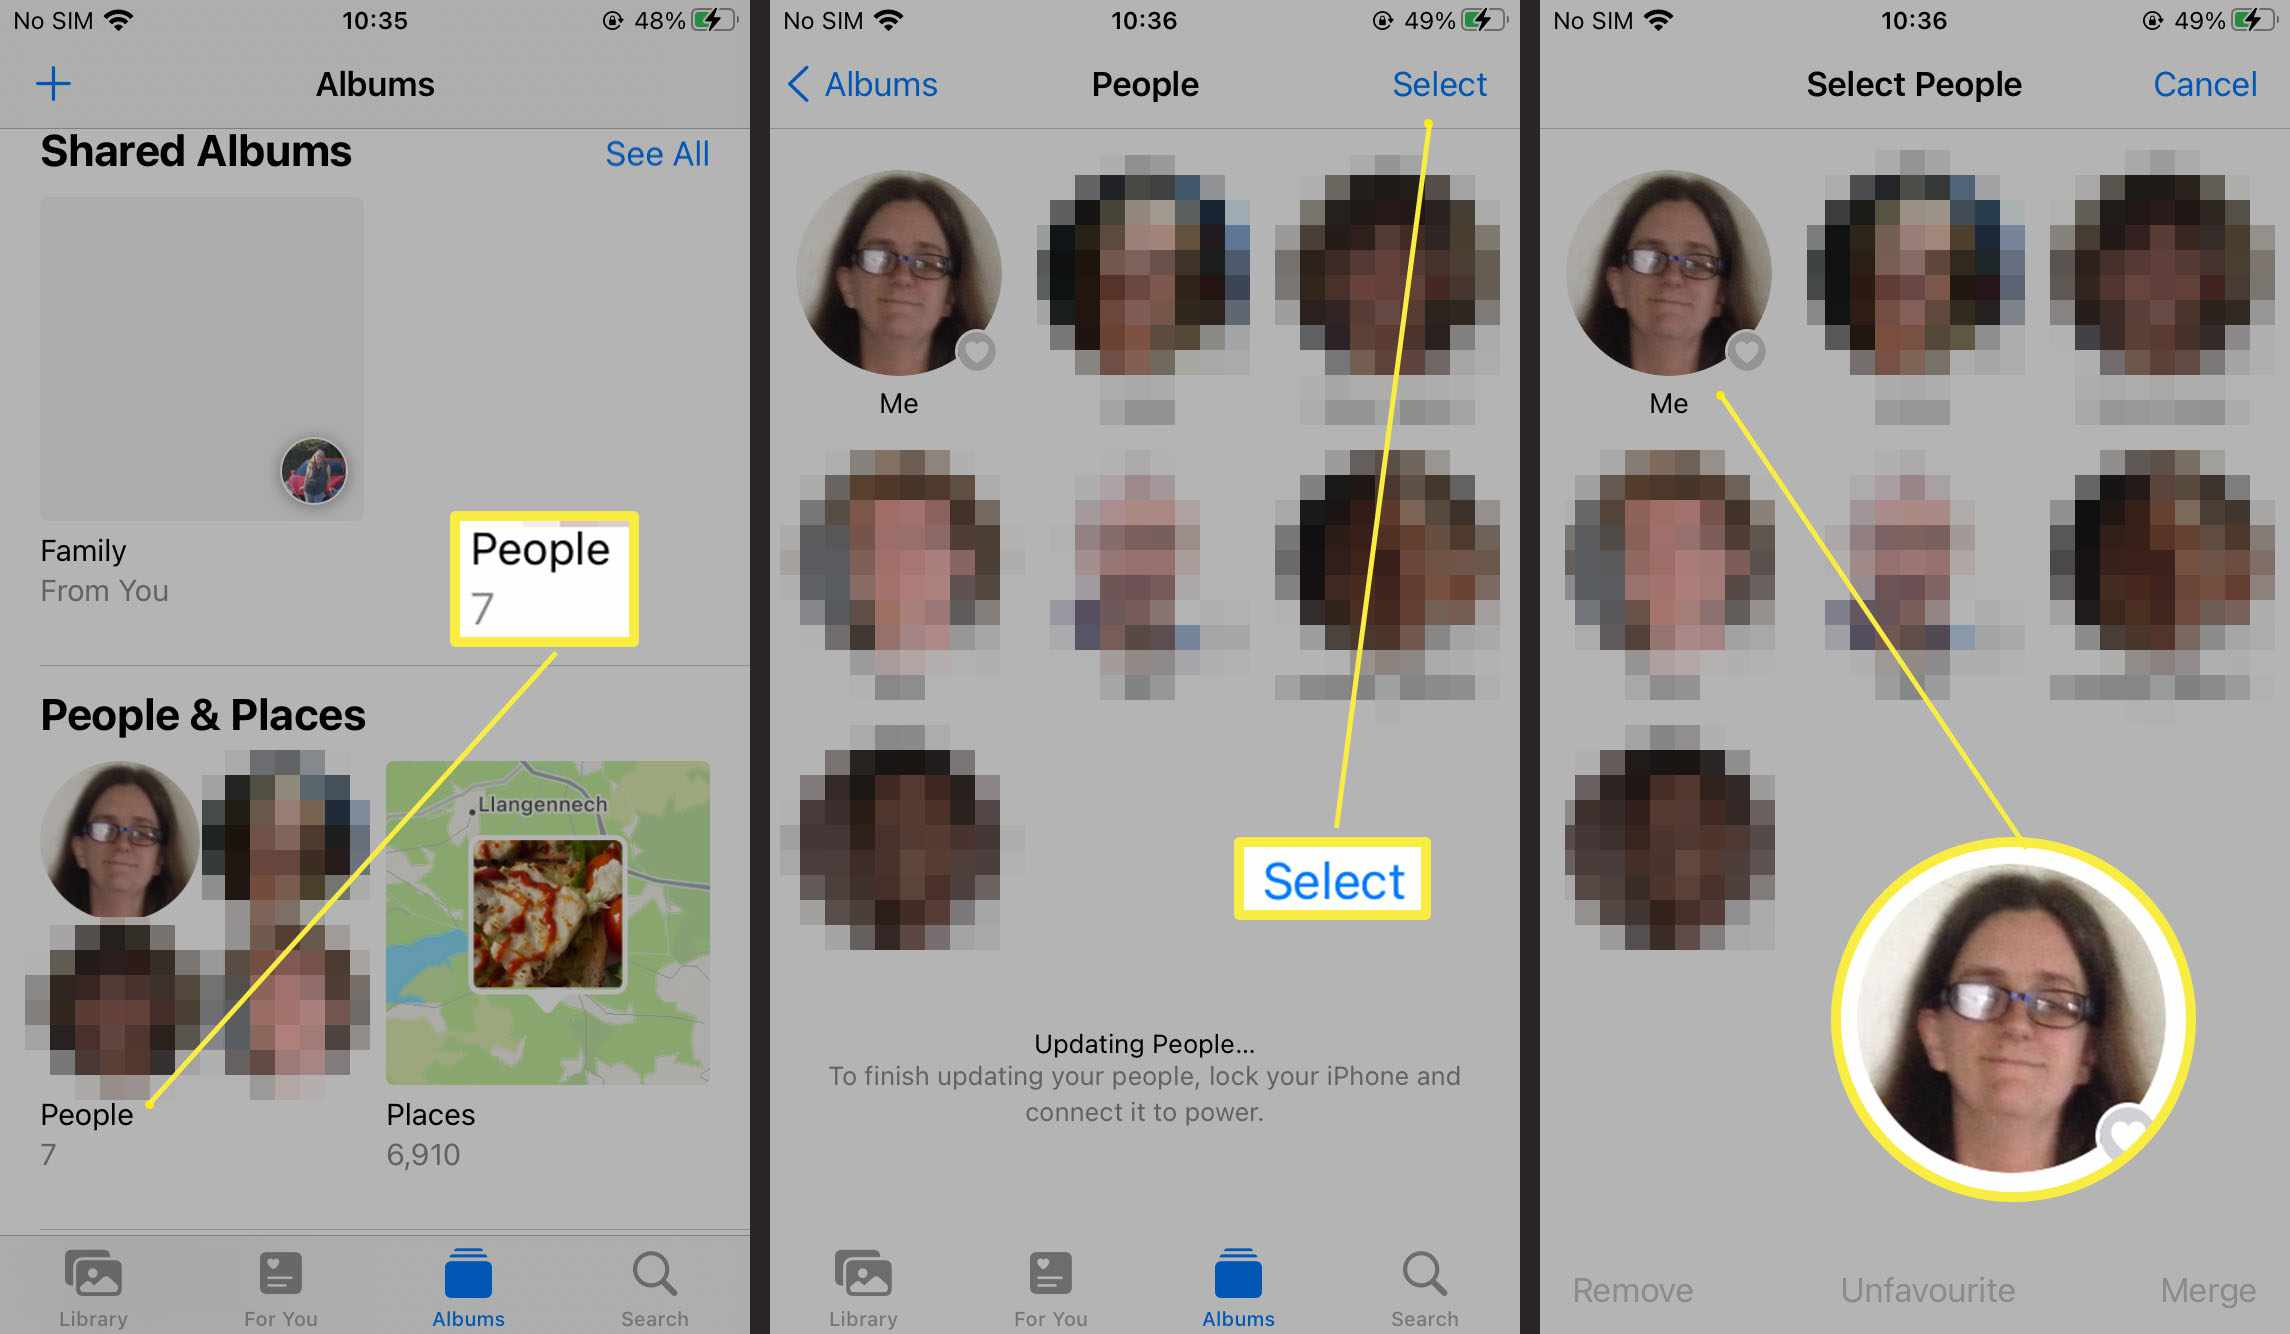 Steps required to select someone in People album on Photos on iOS 15